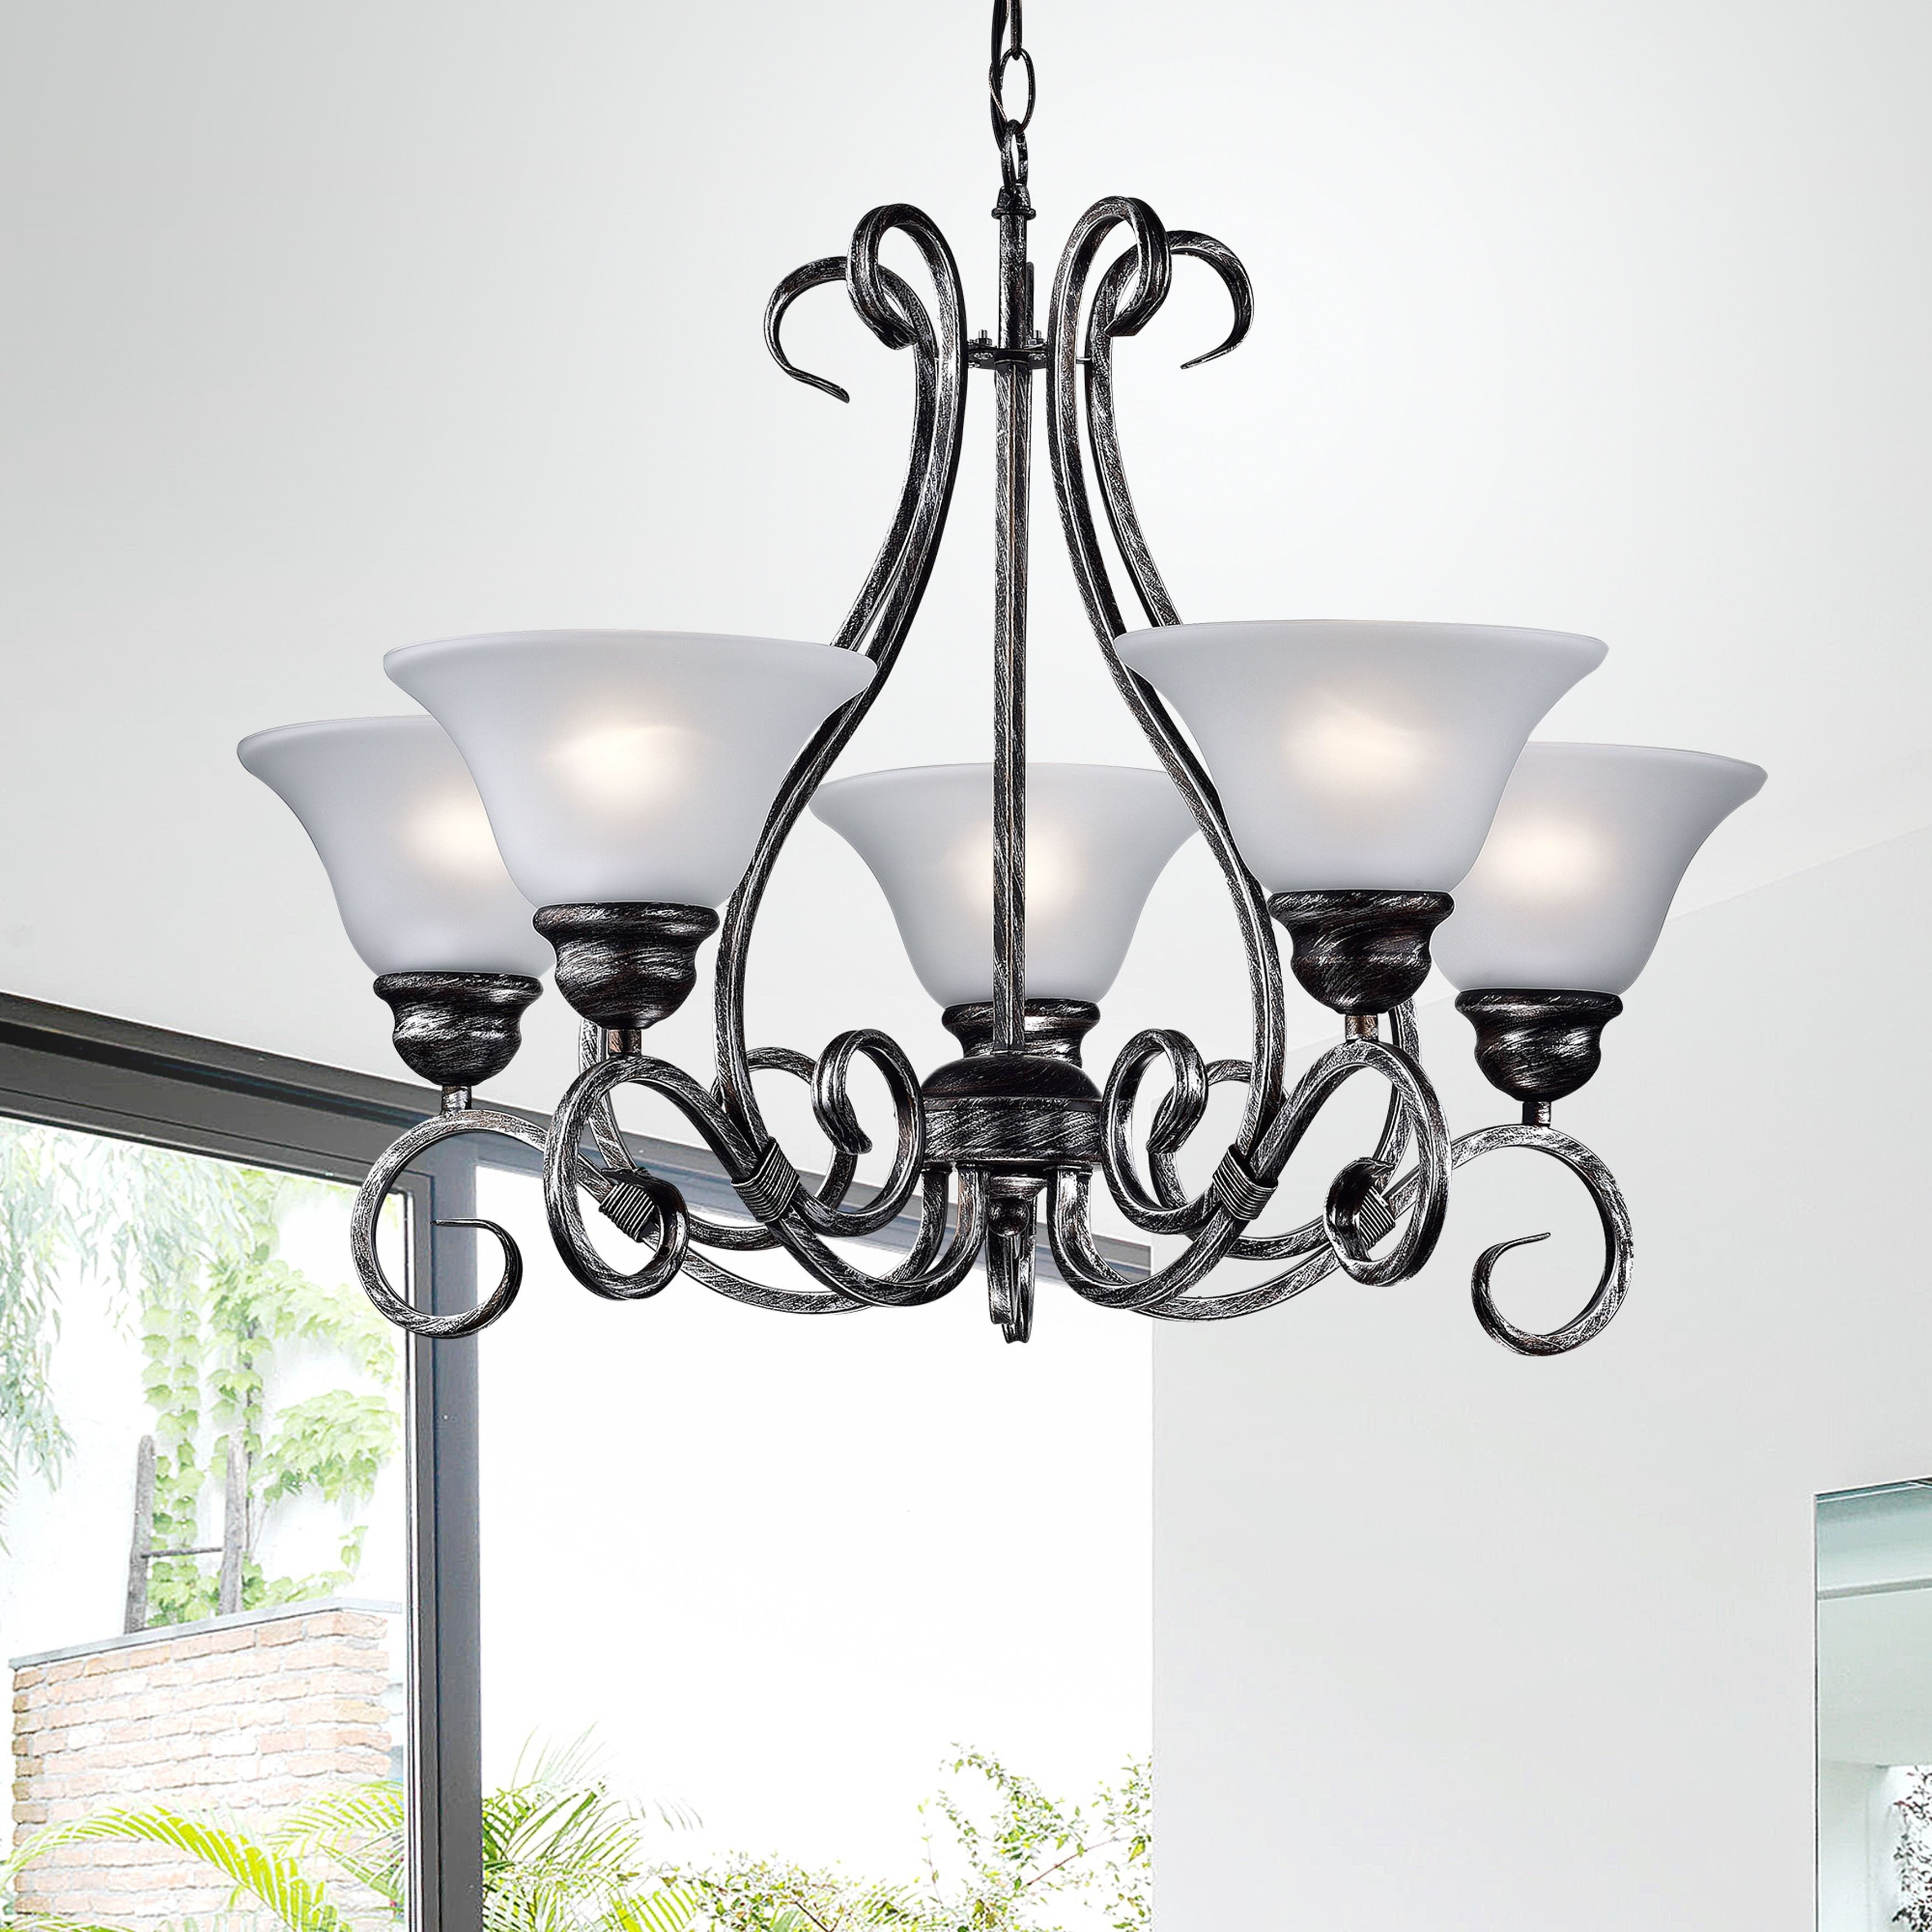 Iron 5 light Hanging Chandelier by The Lighting Store